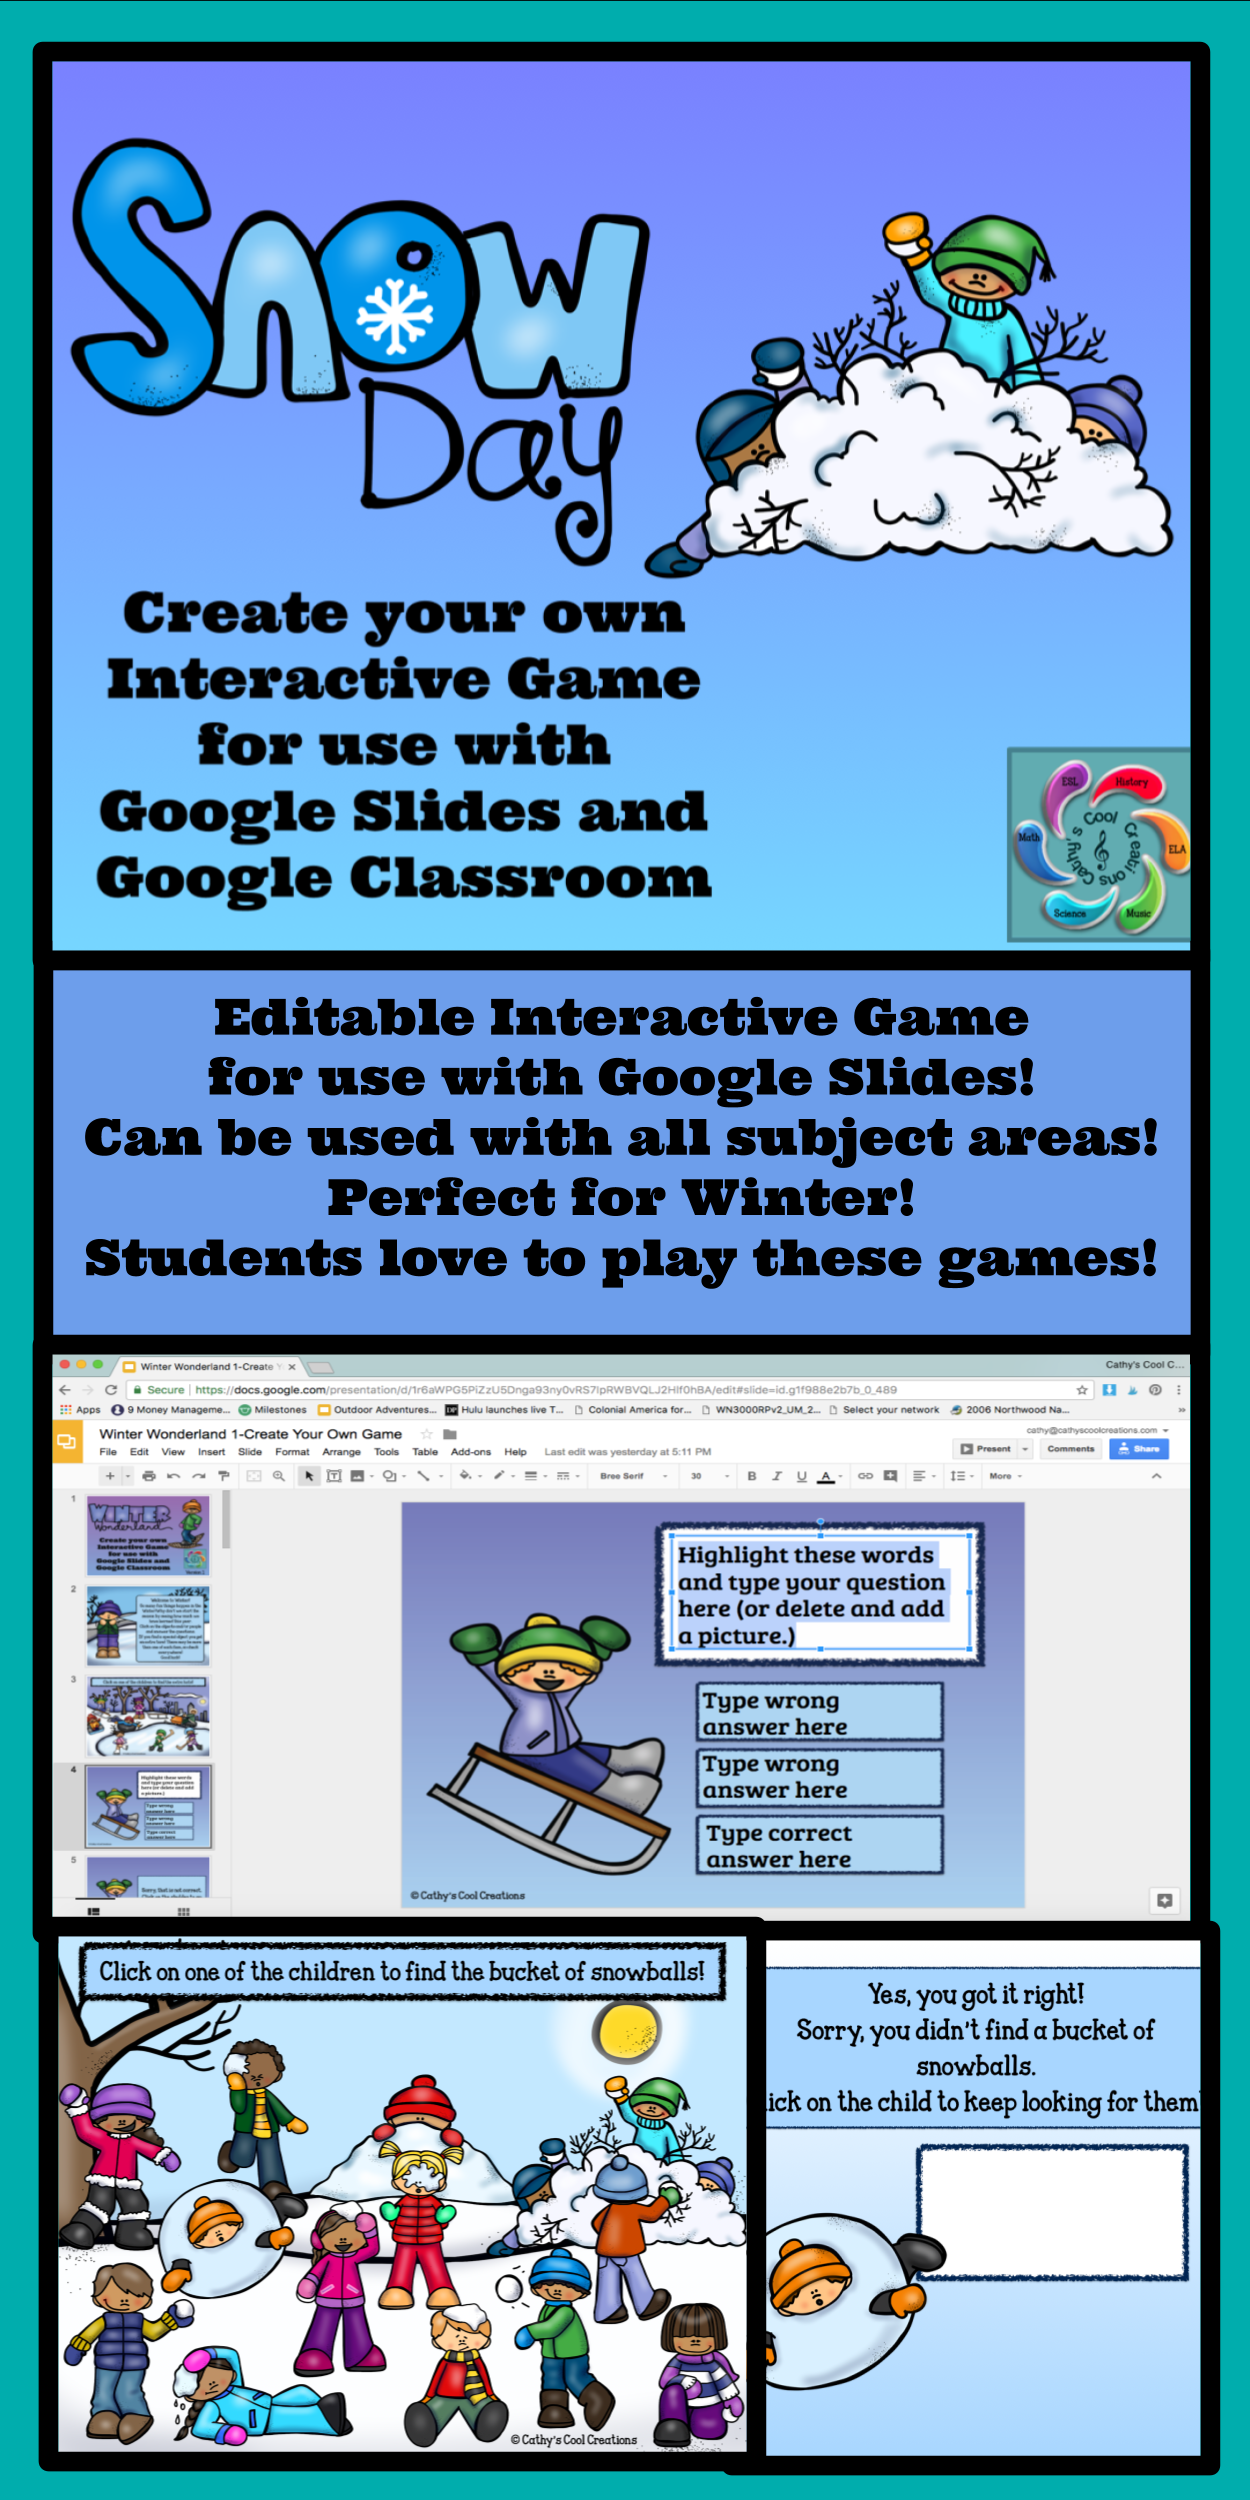 Editable Interactive Game for Google Slides Snow Day